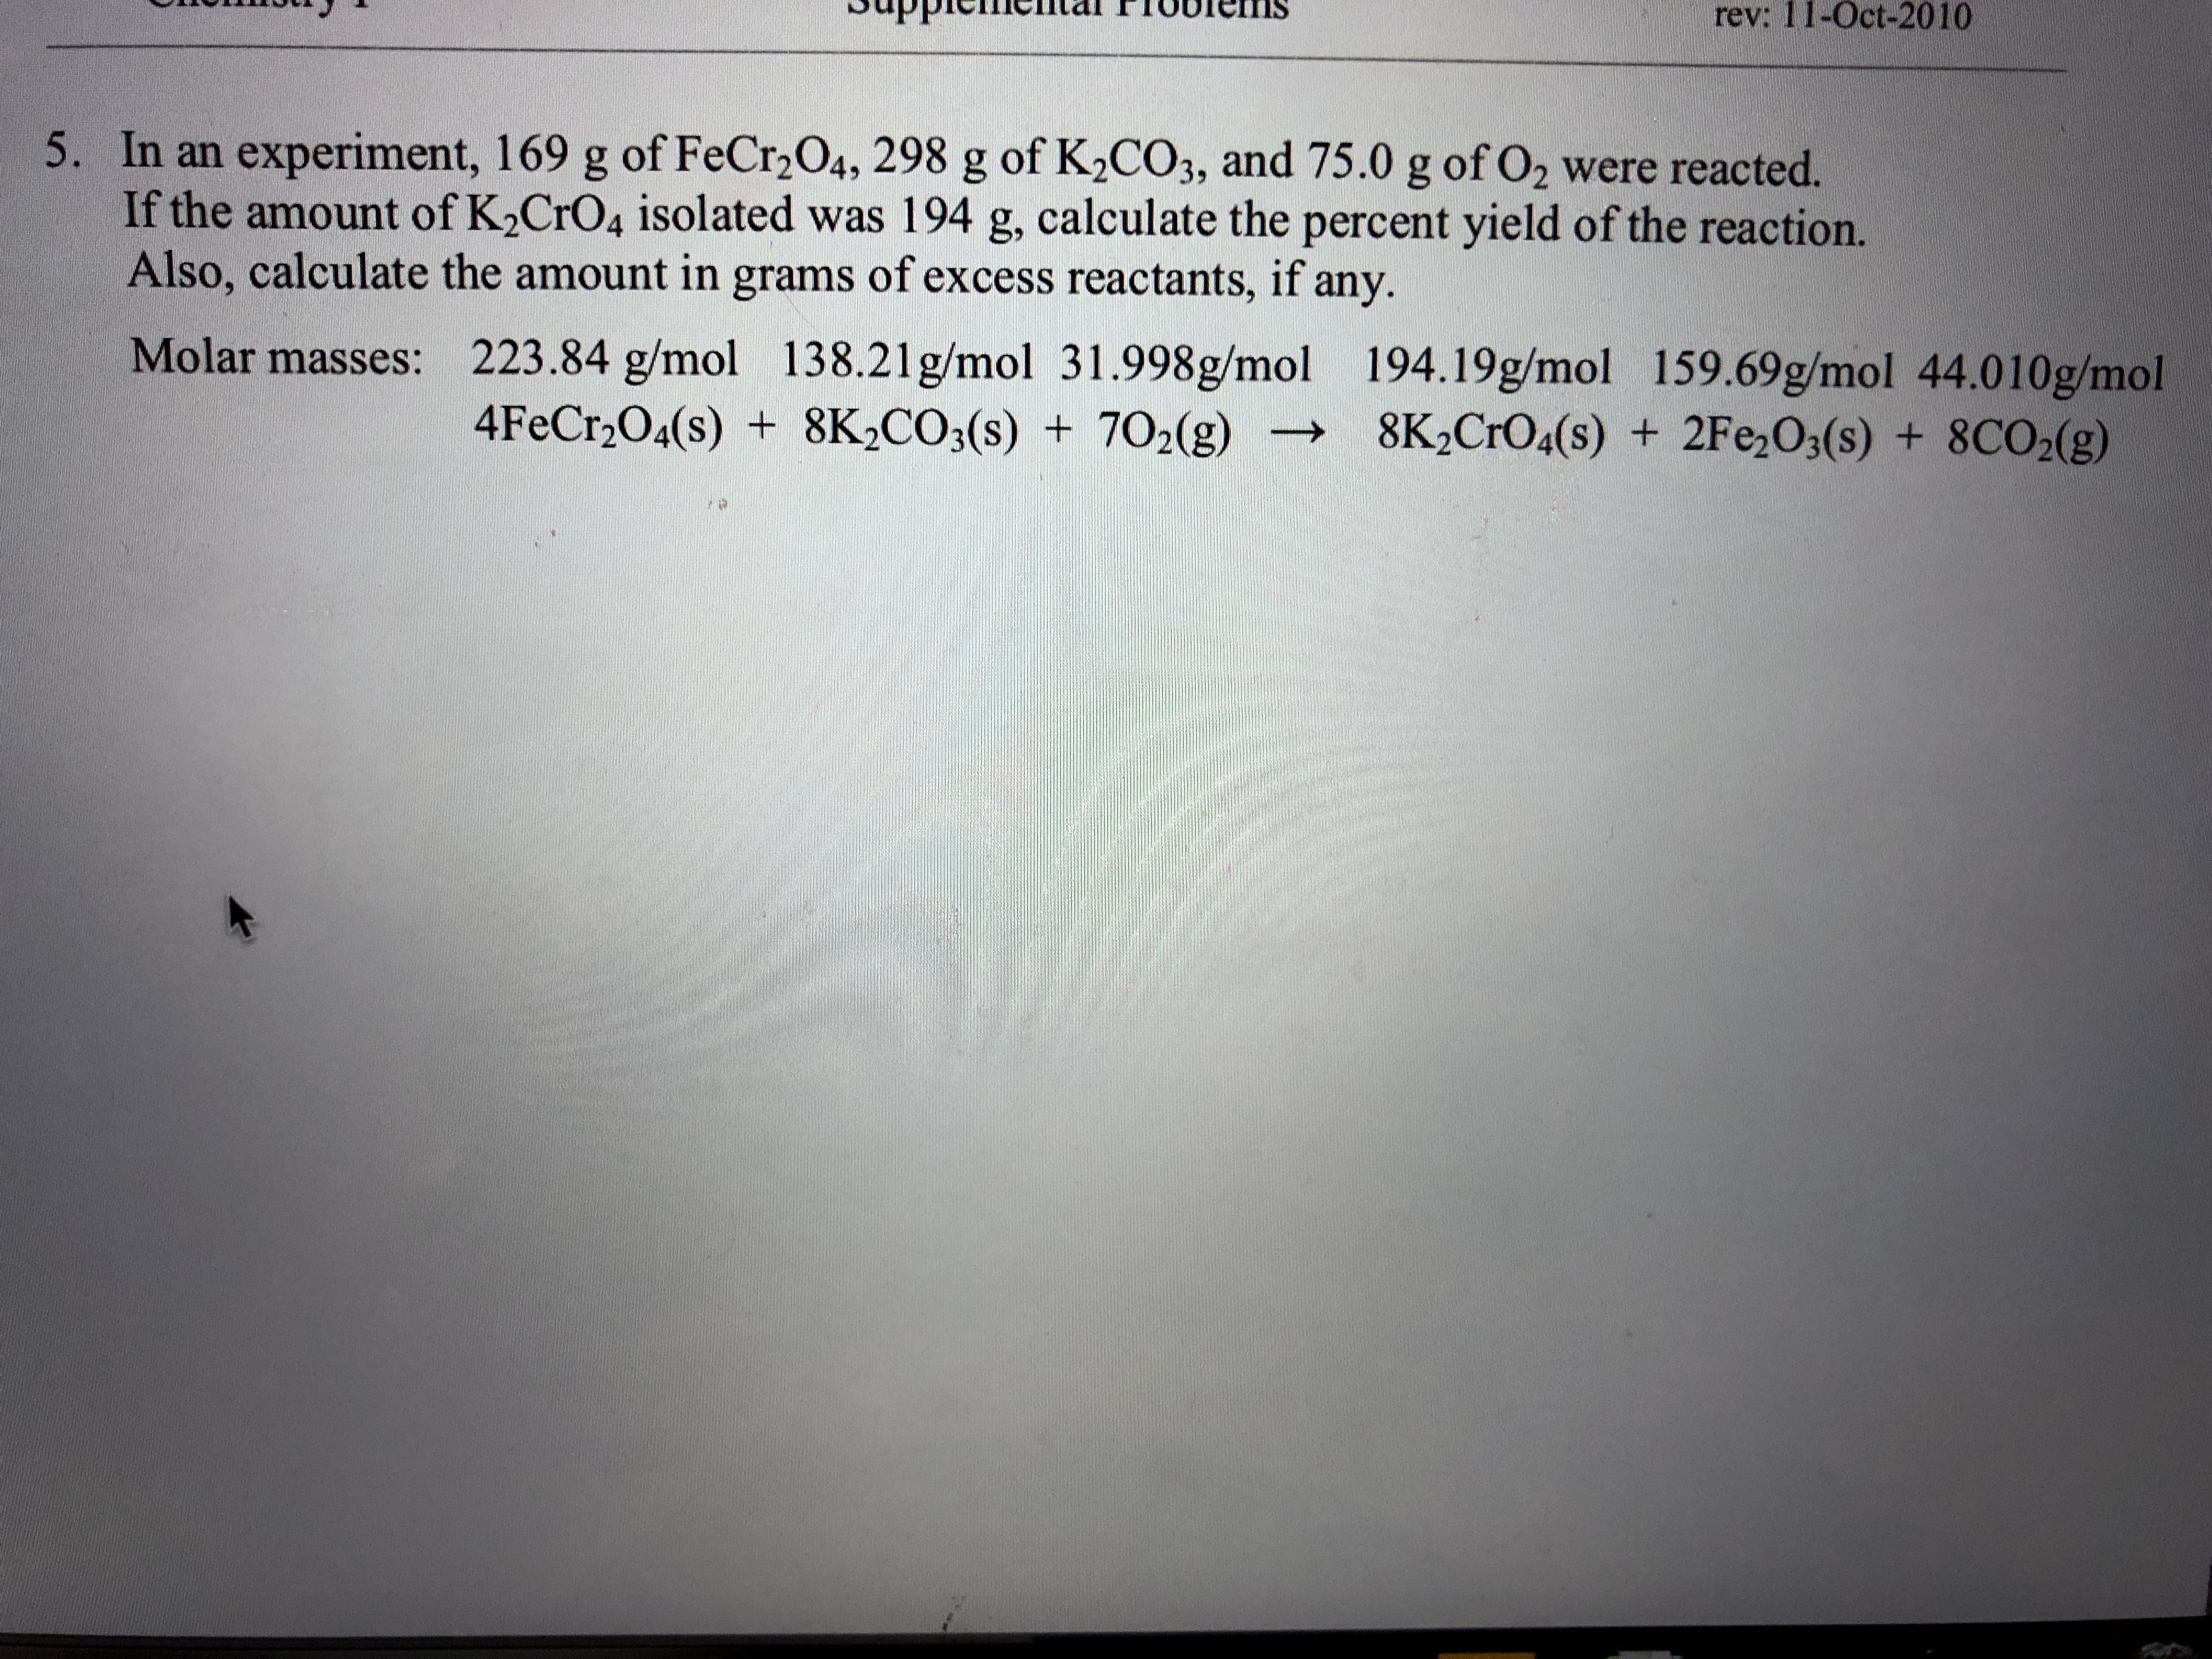 rev: 11-Oct-2010 5. In an experiment, 169 g of FeCr2 O4, 298 g of K2CO3, and 75.0 g of O2 were reacted. If the amount of K2CrO4 isolated was 194 g, calculate the percent yield of the reaction. Also, calculate the amount in grams of excess reactants, if any. 223.84 g/mol 138.21g/mol 31.998g/mol 194.19g/mol 159.69g/mol 44.010g/mol 4FeCr2O4(s) 8K2CO3(s) Molar masses: +702(g) 8K2CrO4(s) + 2Fe O3(s) + 8CO2(g)